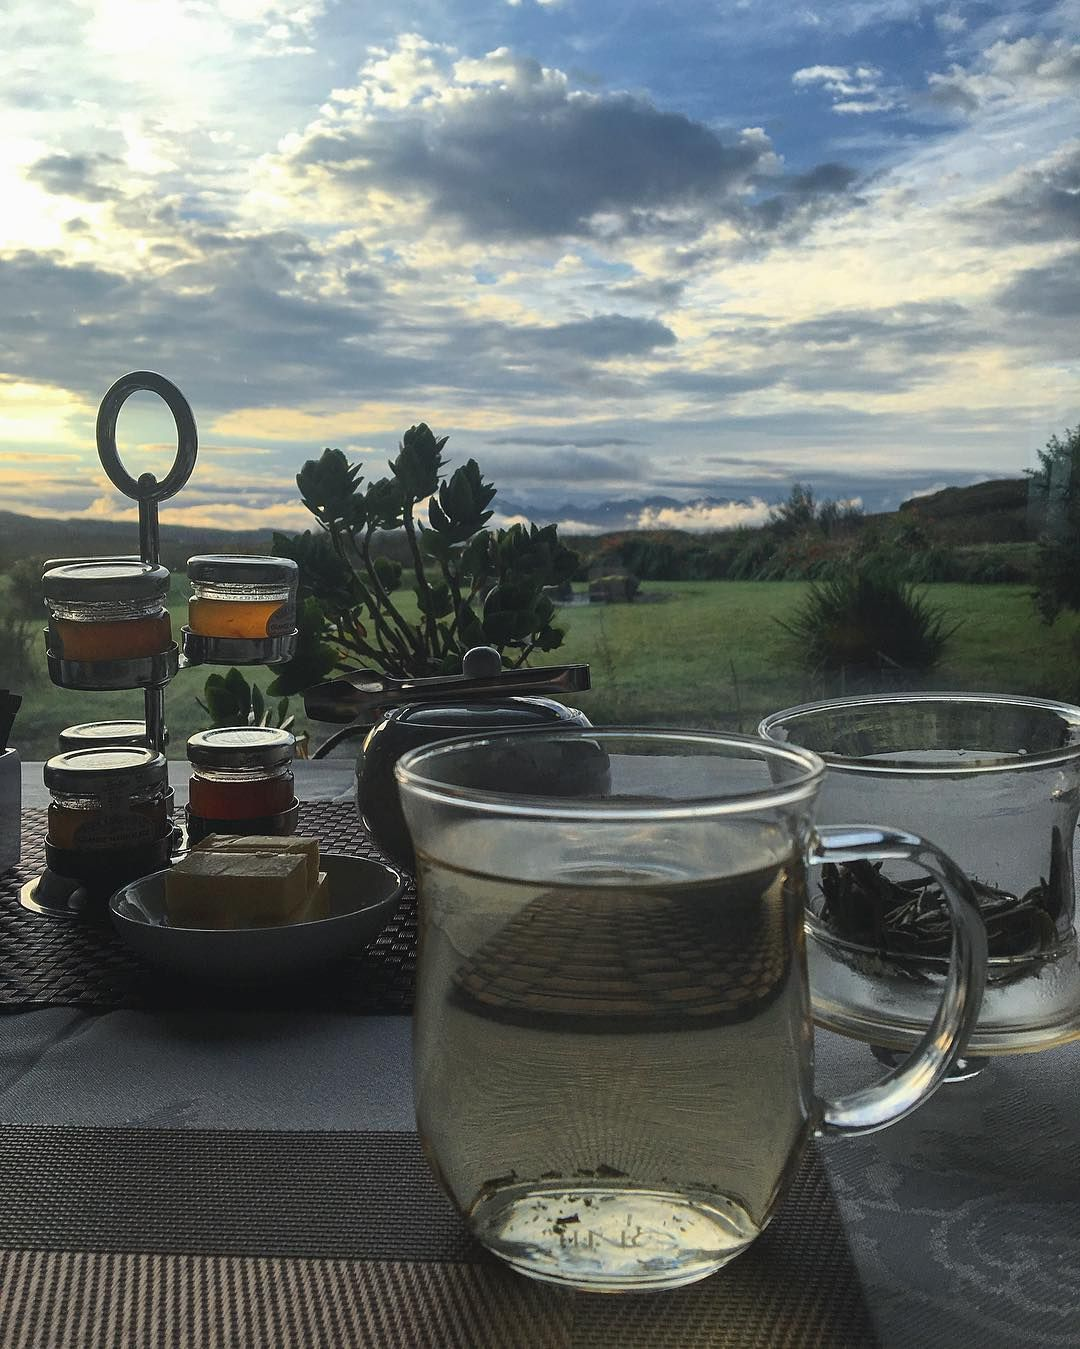 Morning tea with a view.